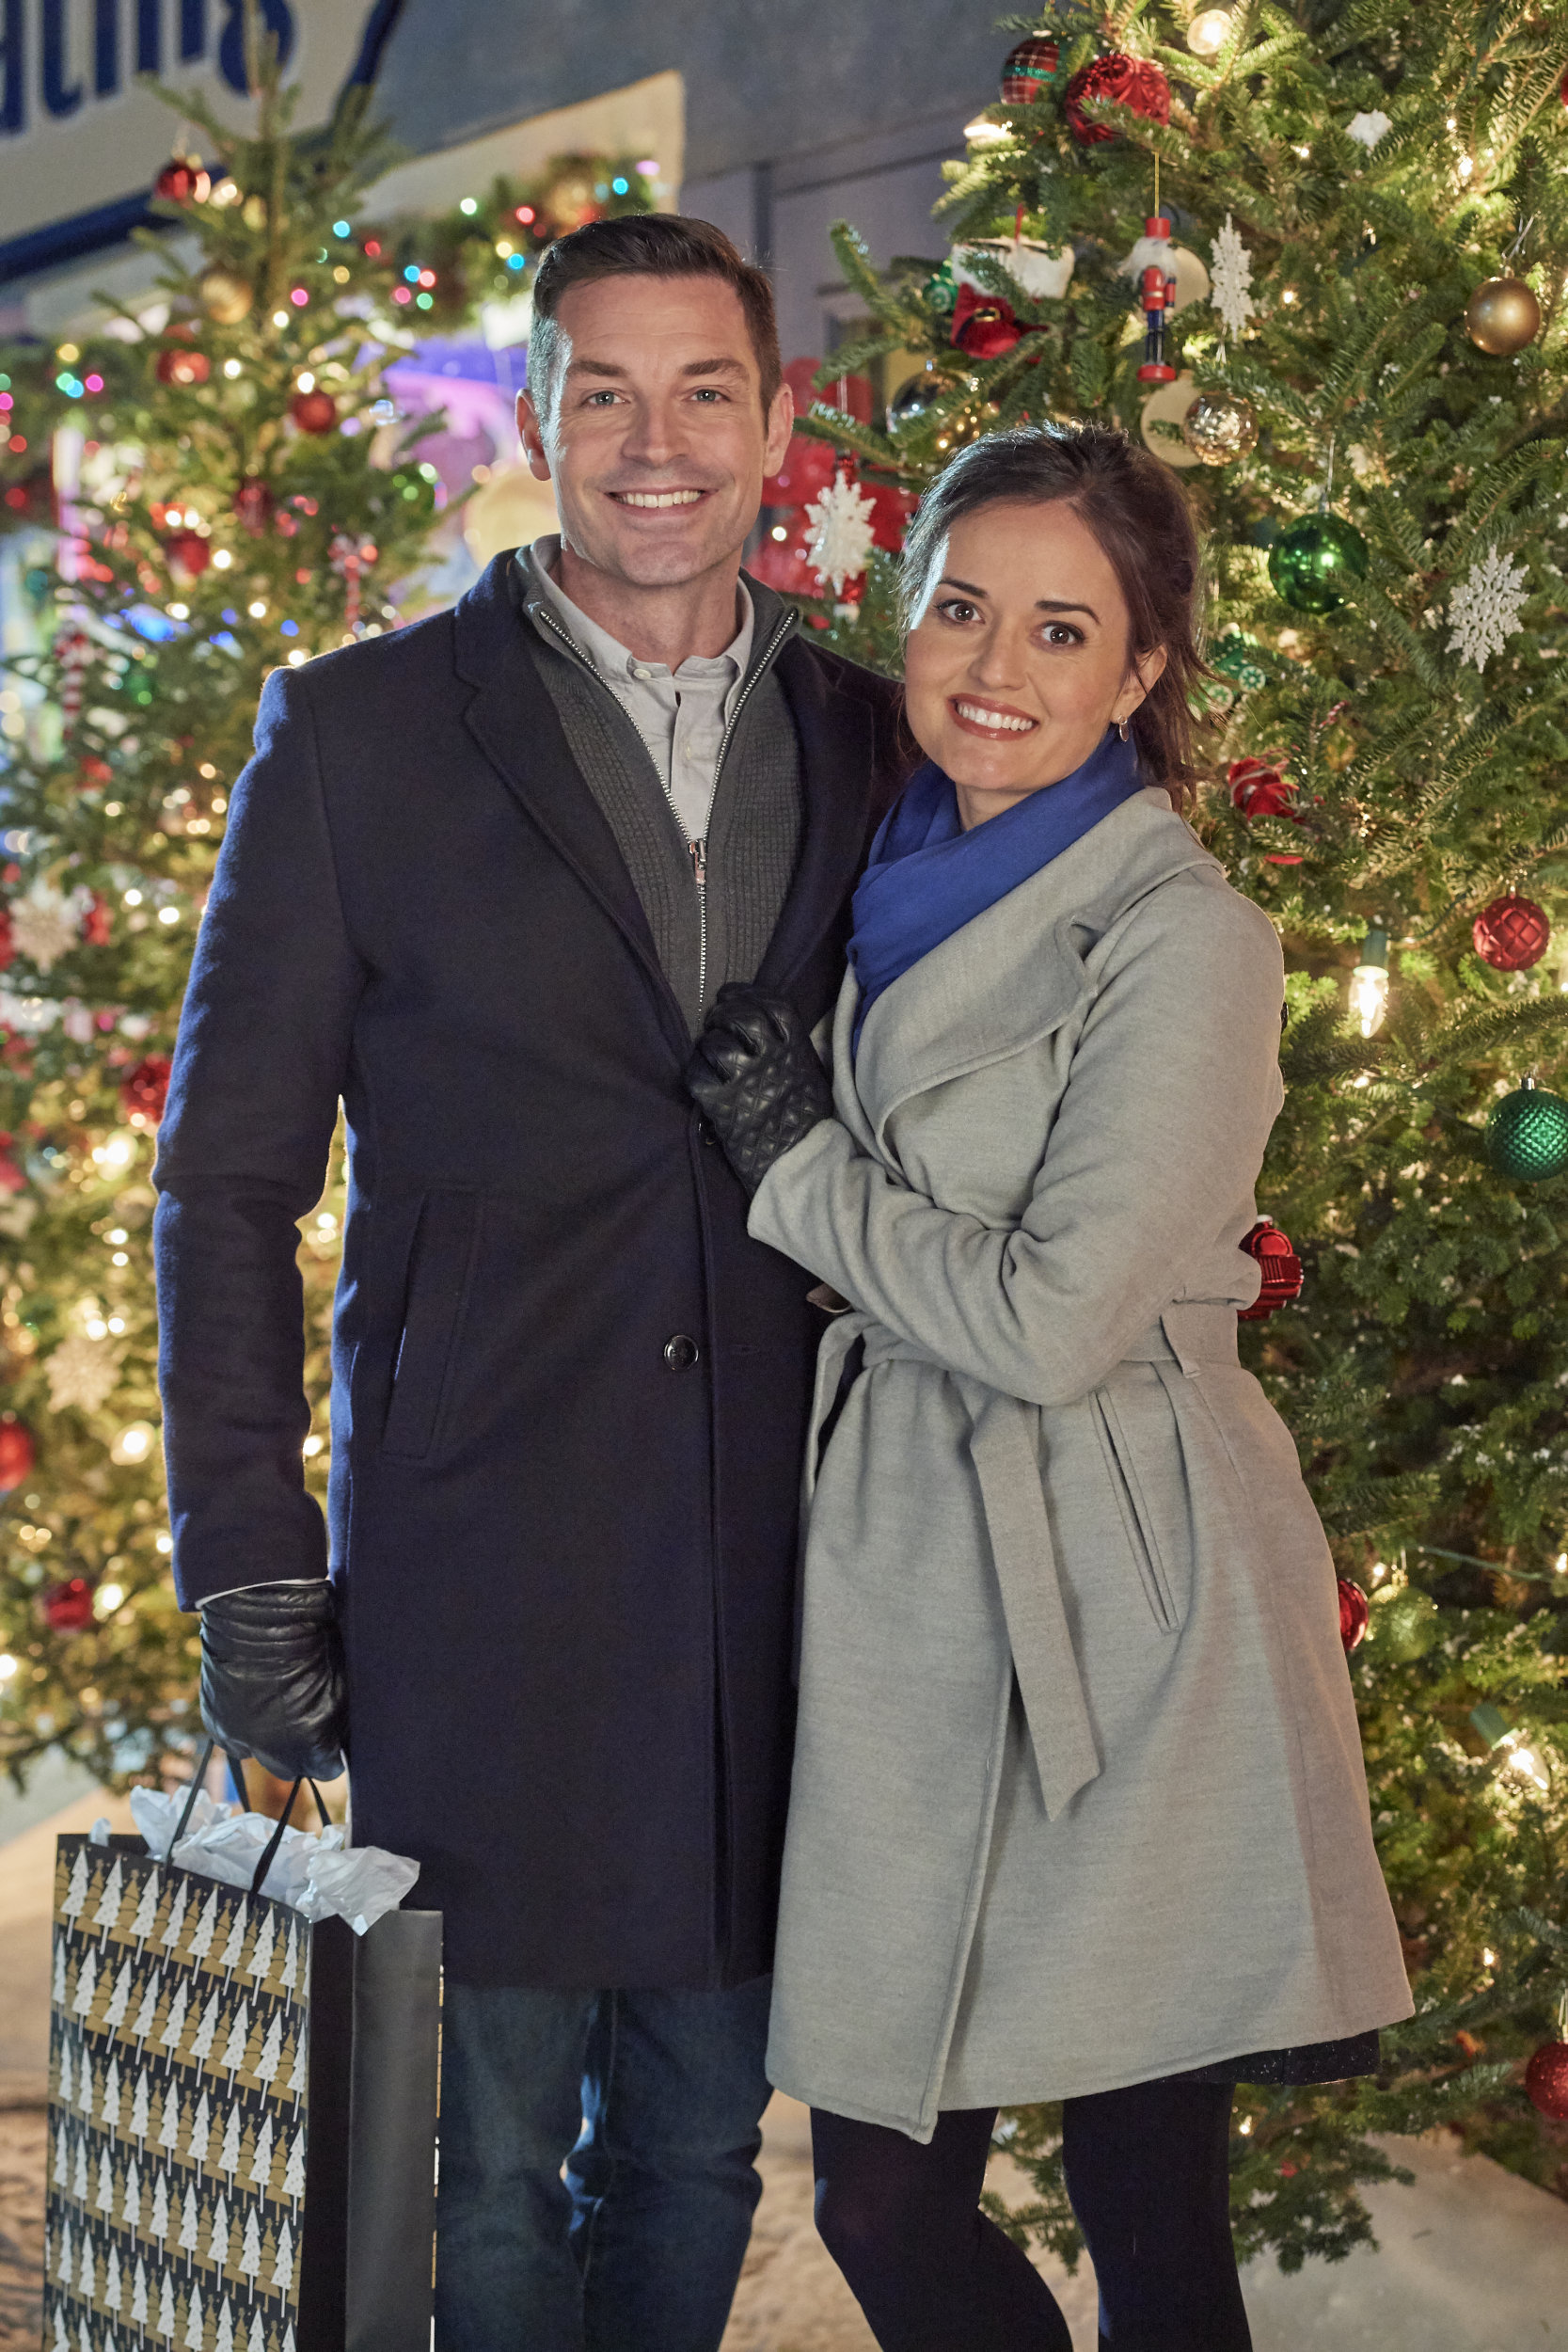 Christmas At Grand Valley.Christmas At Grand Valley Cast Hallmark Movies And Mysteries